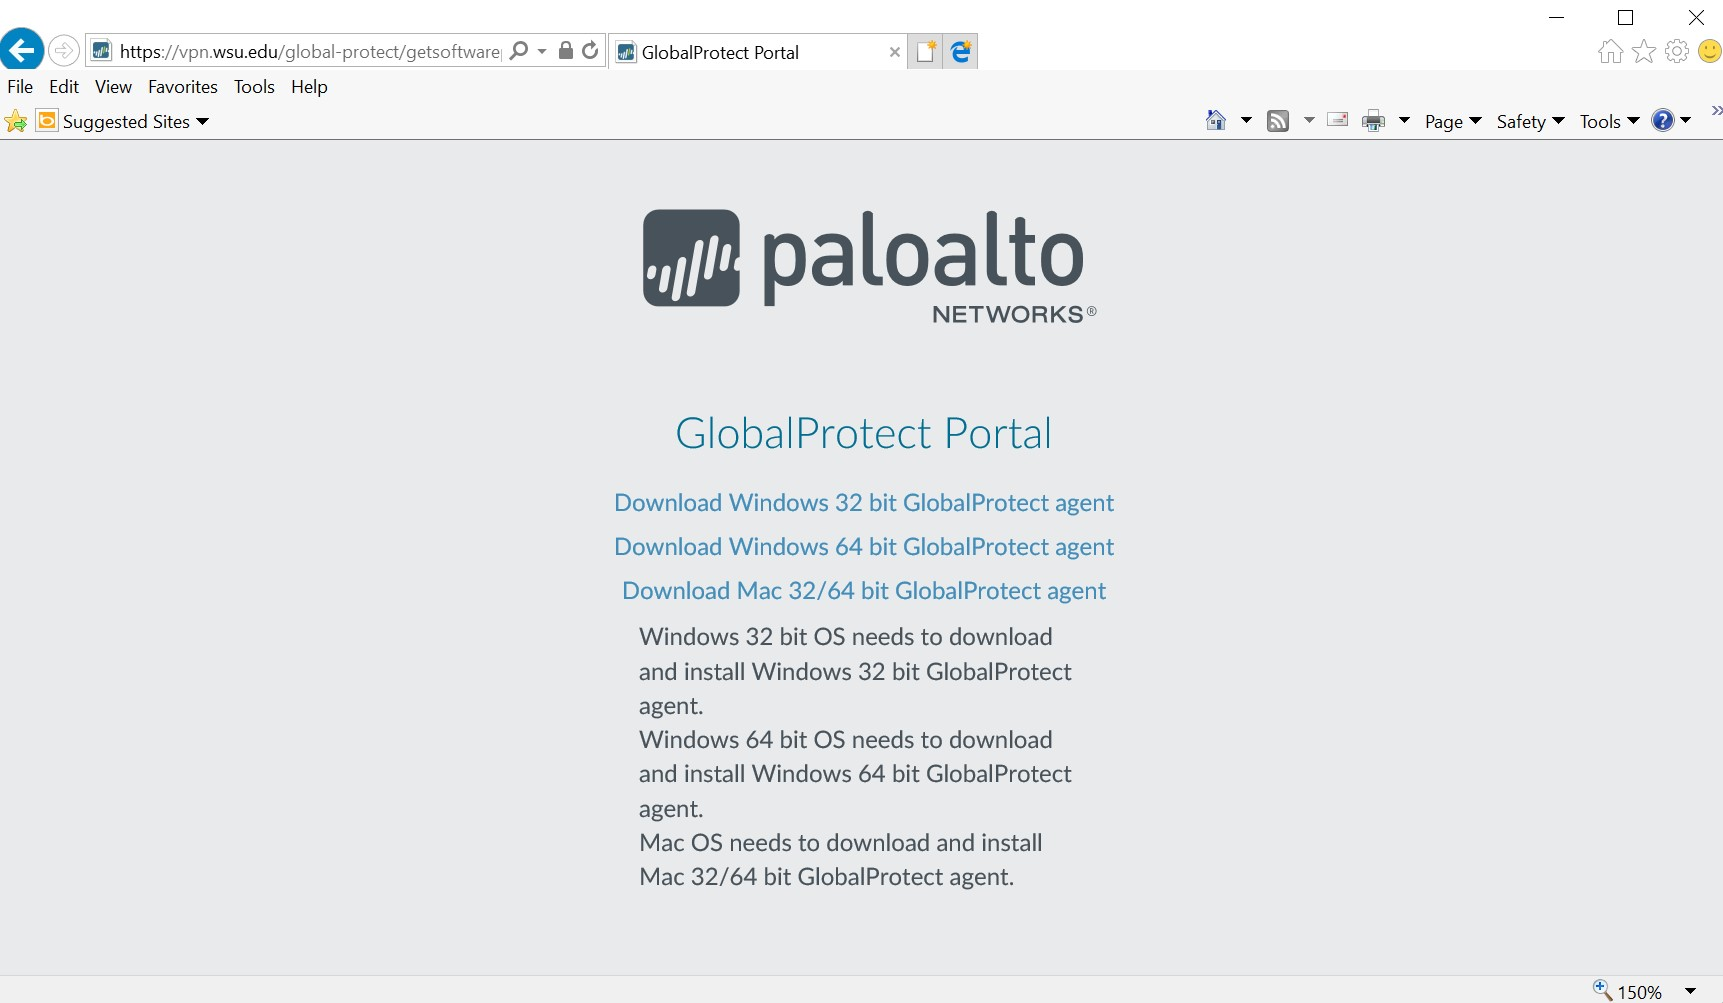 Paloalto Global Protect Portal